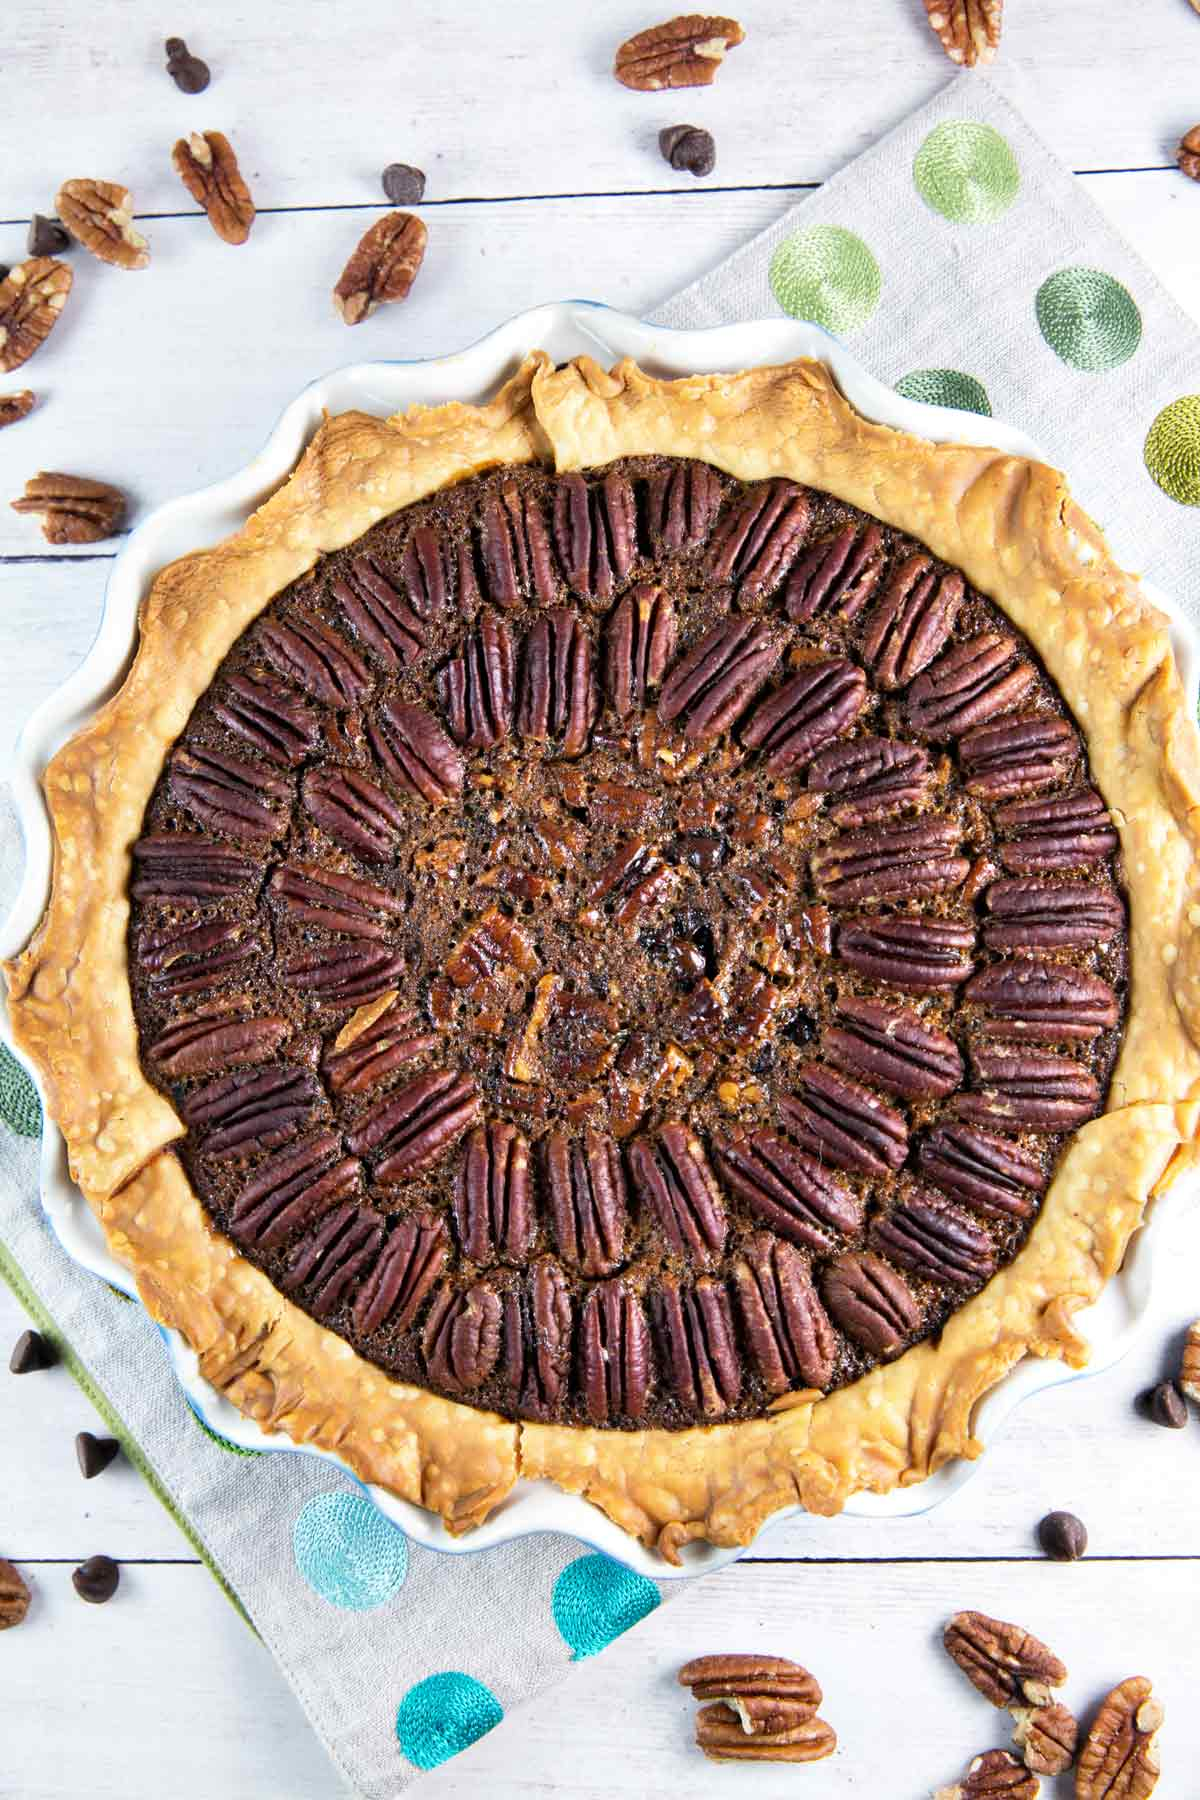 overhead view of a whole chocolate bourbon pecan pie with pecans arranged decoratively on the surface